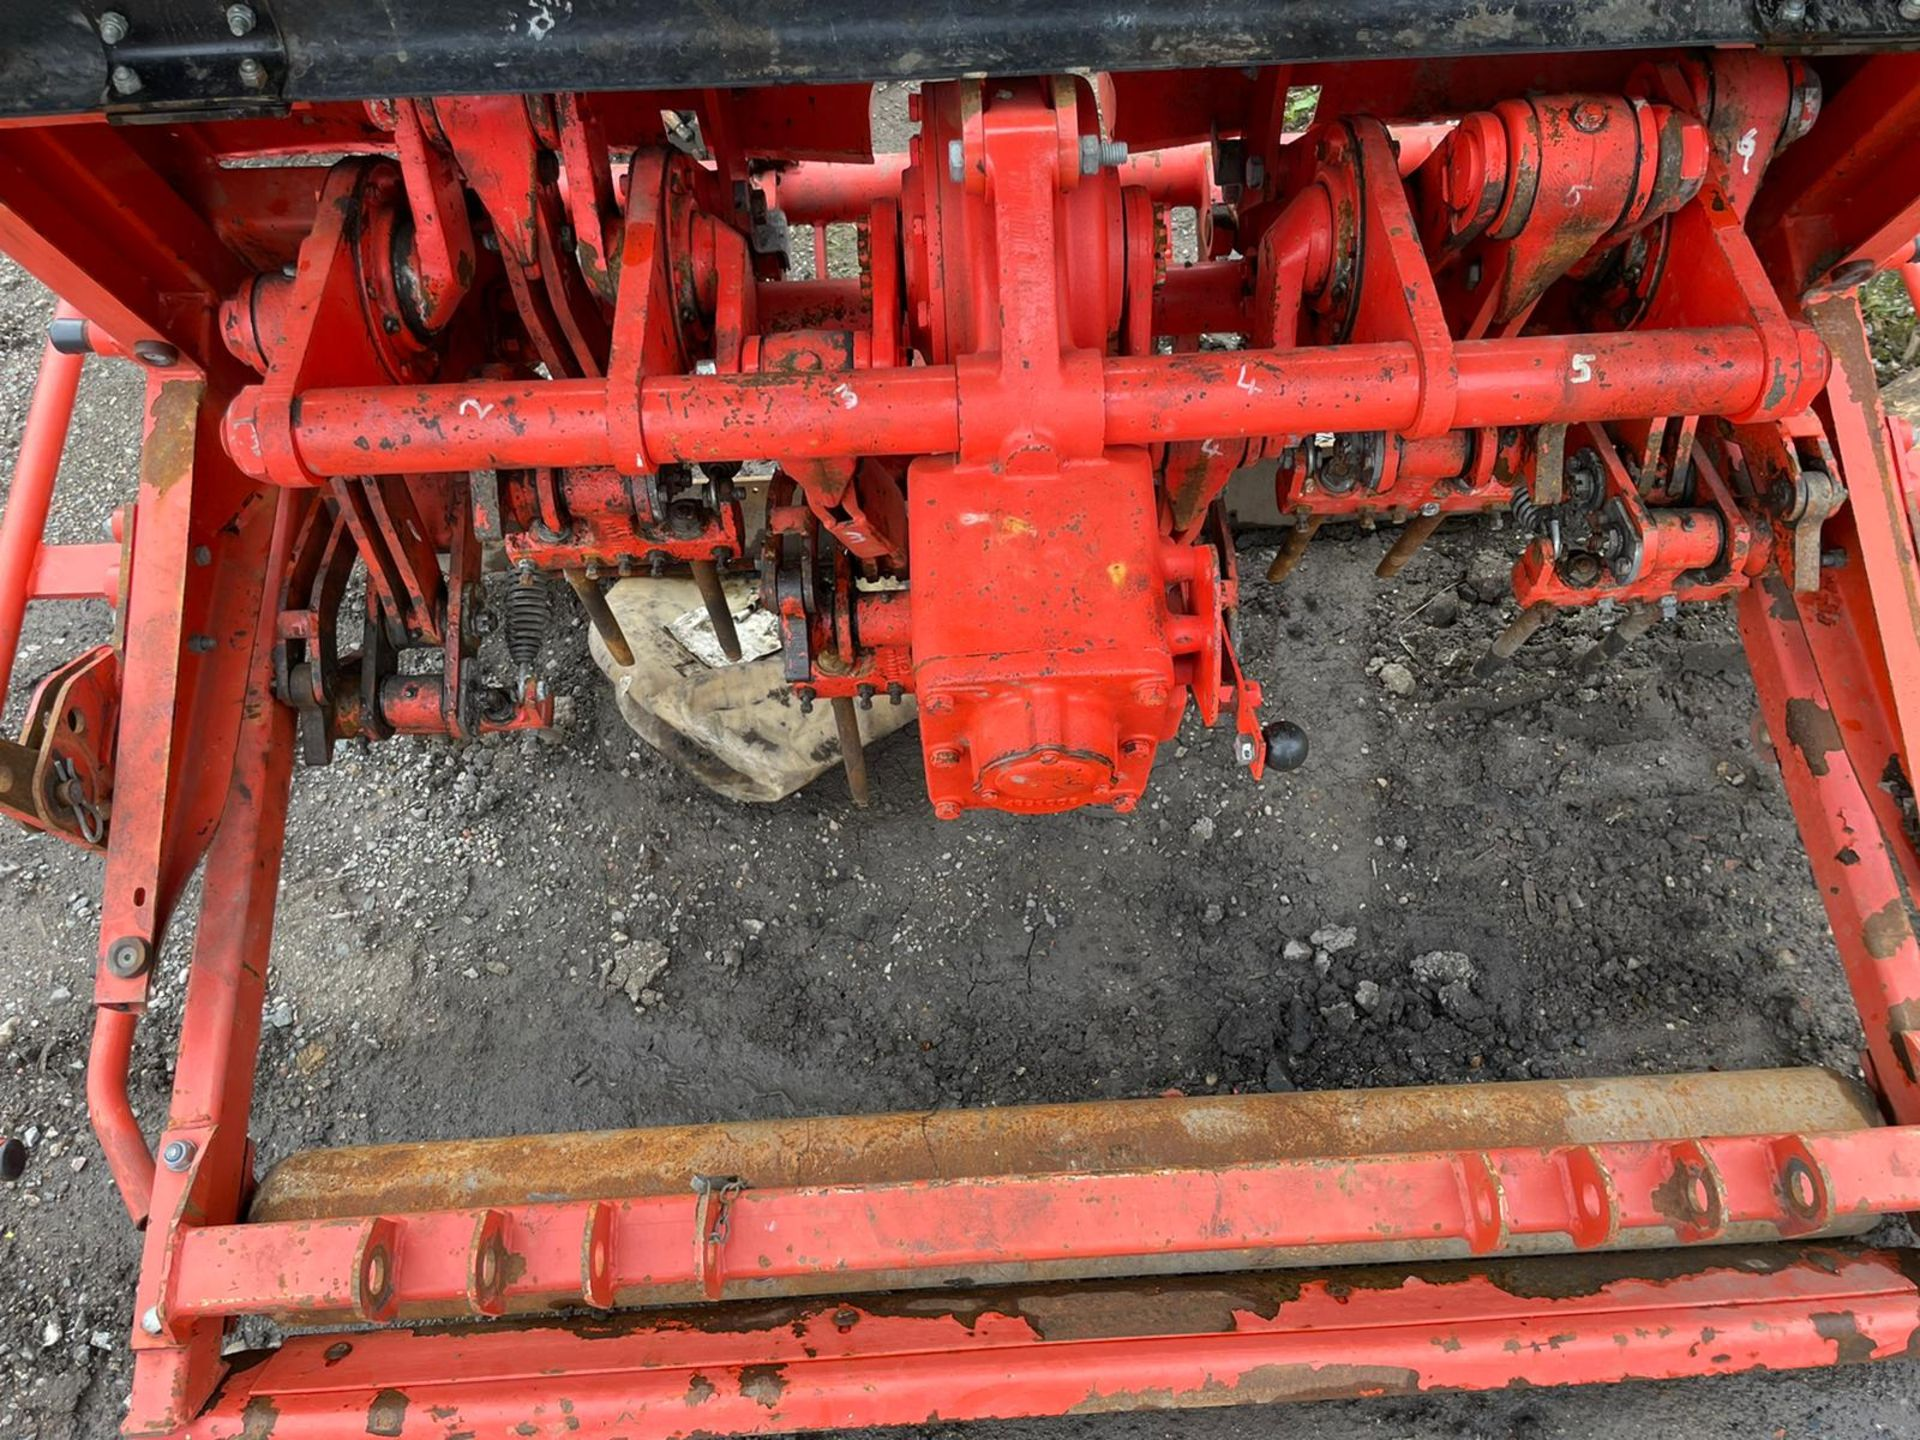 Weidenmann Terra Spike G6/135 Aerator, Suitable For 3 Point Linkage, PTO driven,all teeth are there - Image 2 of 4